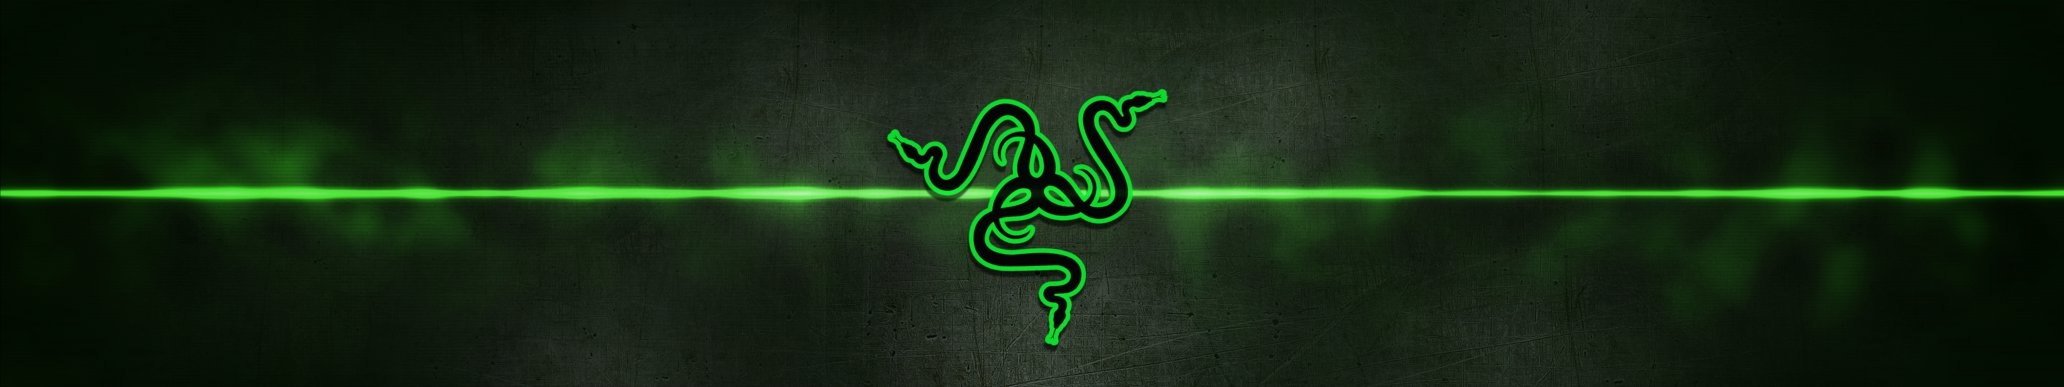 razer - 5760 x 1080 triple monitor hires wallpapercporsdesigns